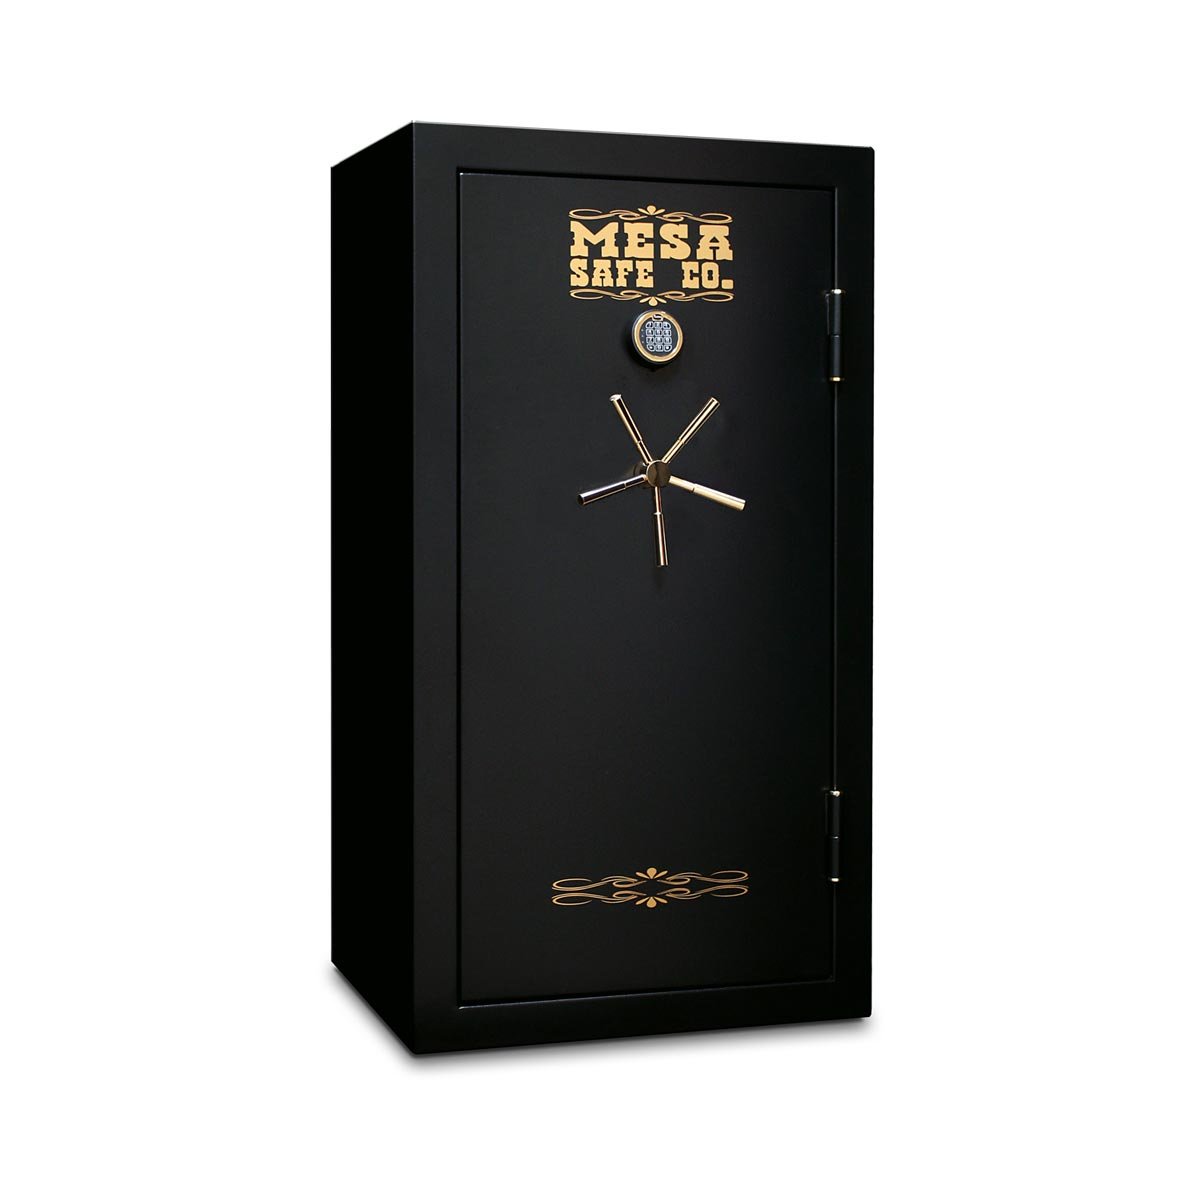 Mesa Safes MBF6032 Gun Safe - 1 Hour Fire 26 Gun Safe